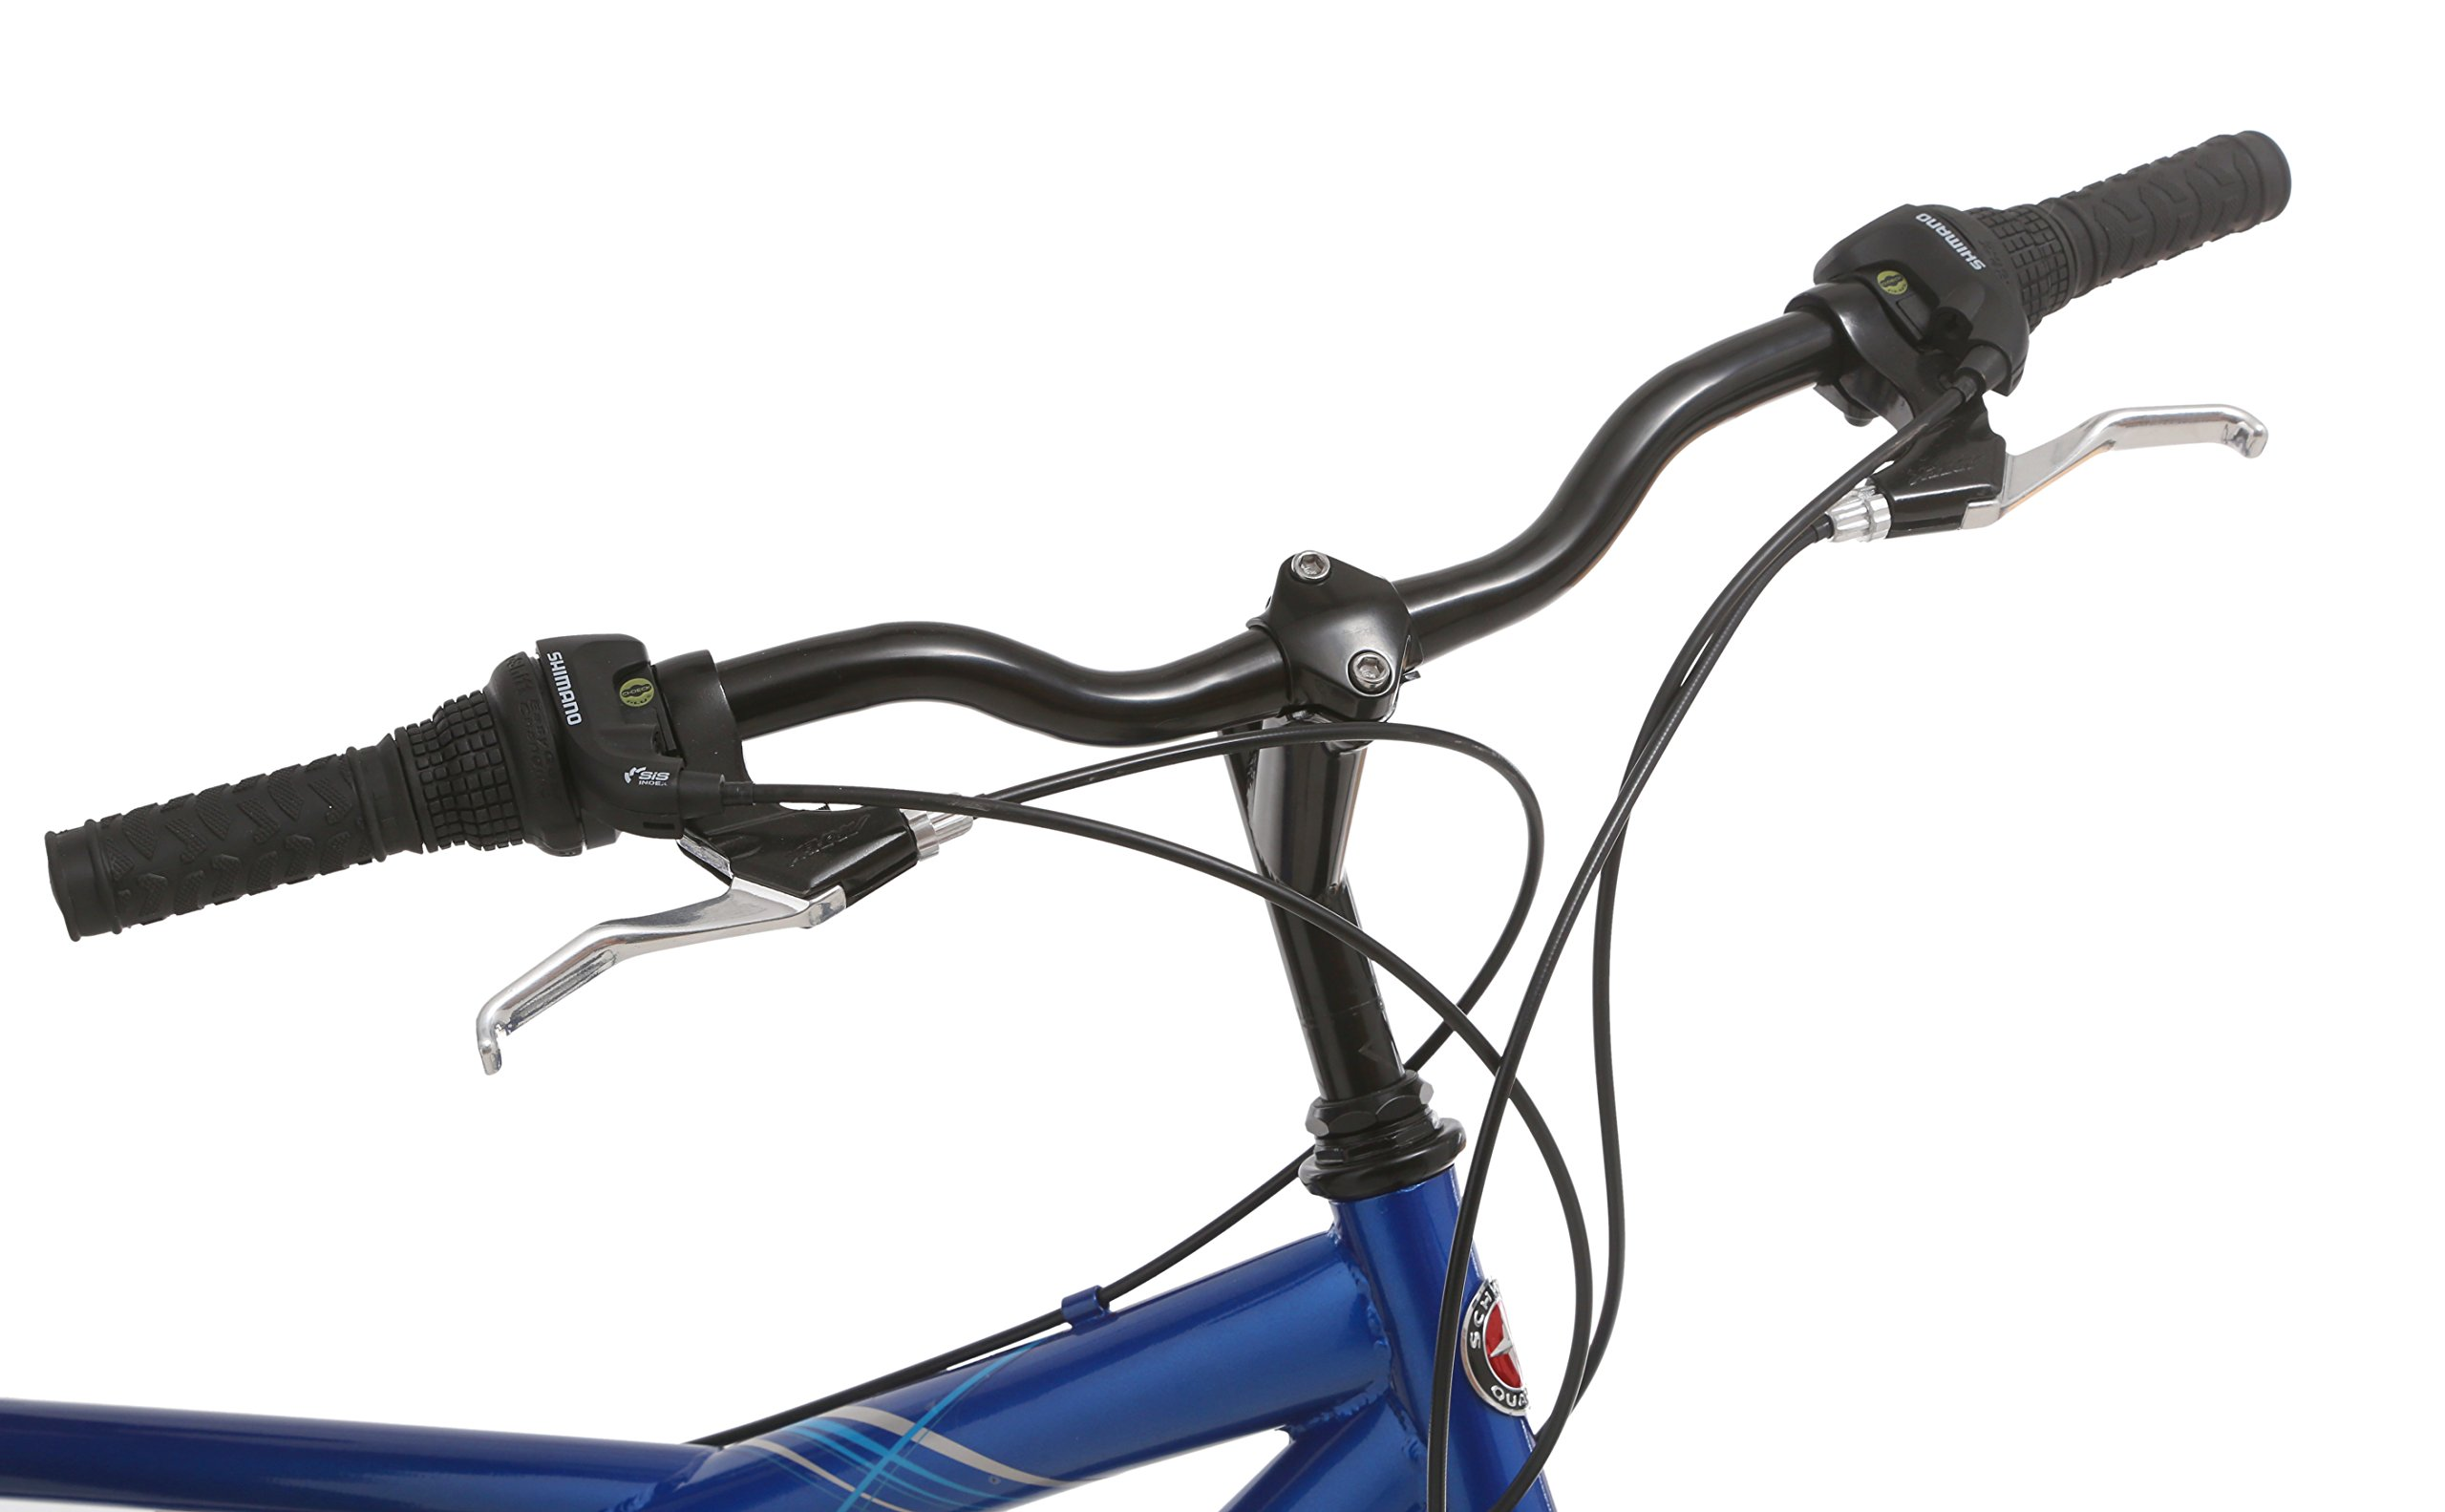 Pacific Dualie Tandem Bicycle w/ 26inch Wheels,Blue, One Size by Pacific (Image #7)